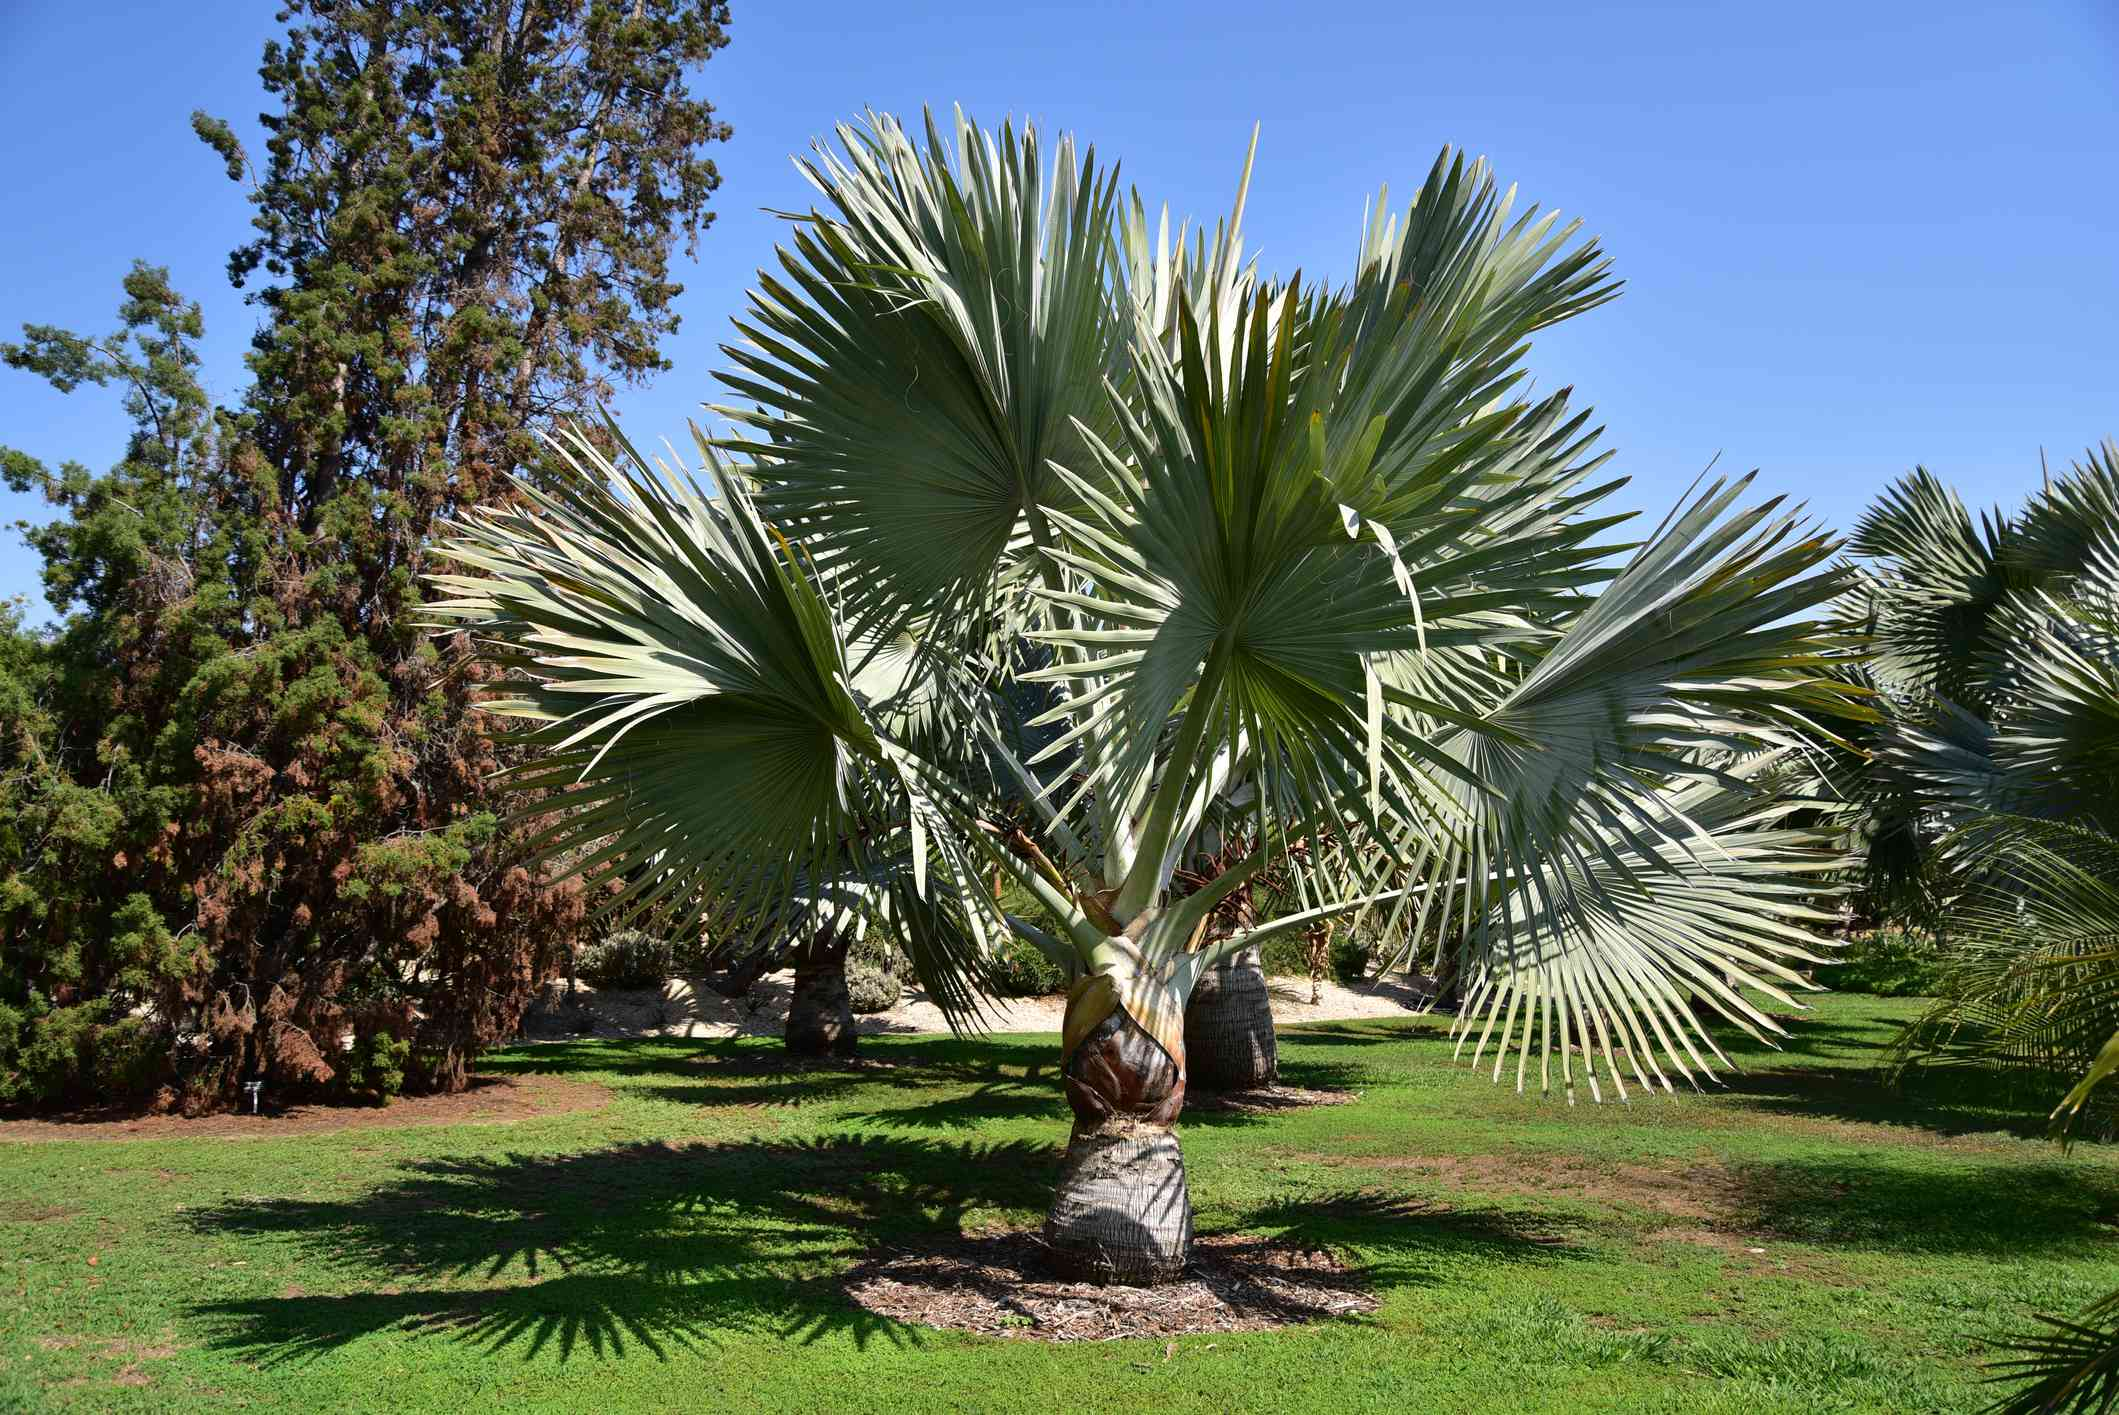 Bismark palm or Blue Palm tree